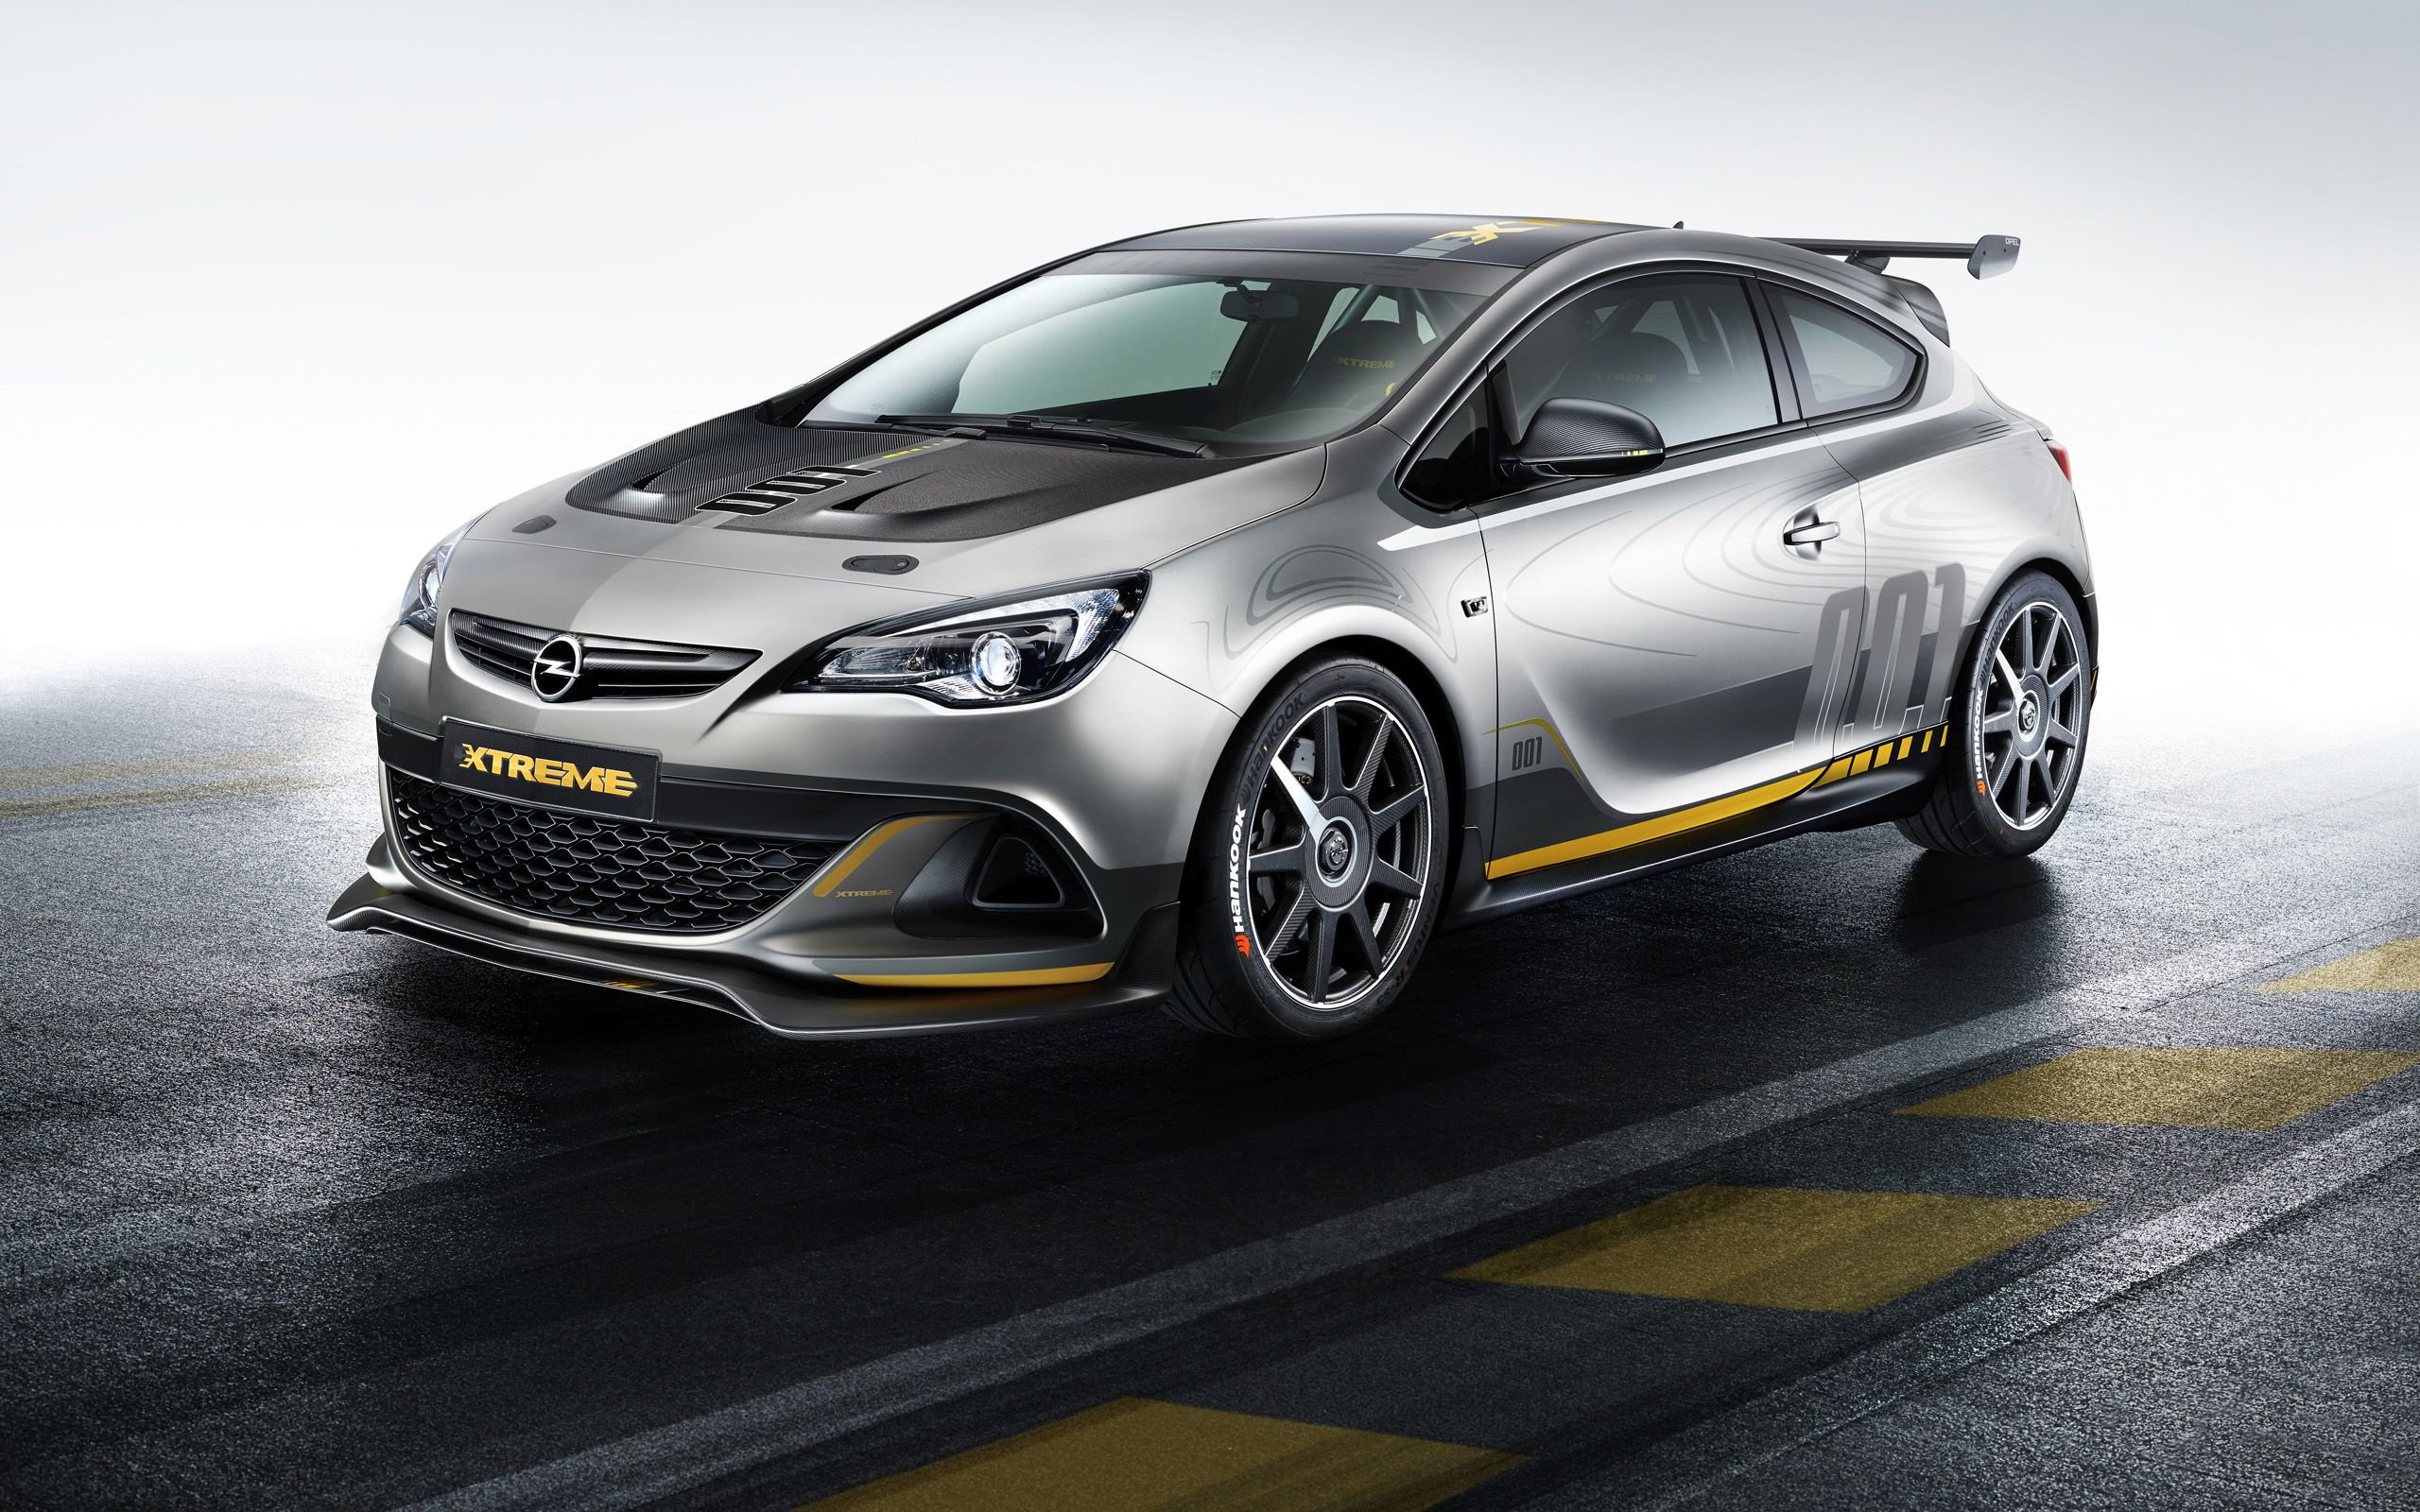 2014 Opel Astra OPC Extreme Wallpaper | HD Car Wallpapers